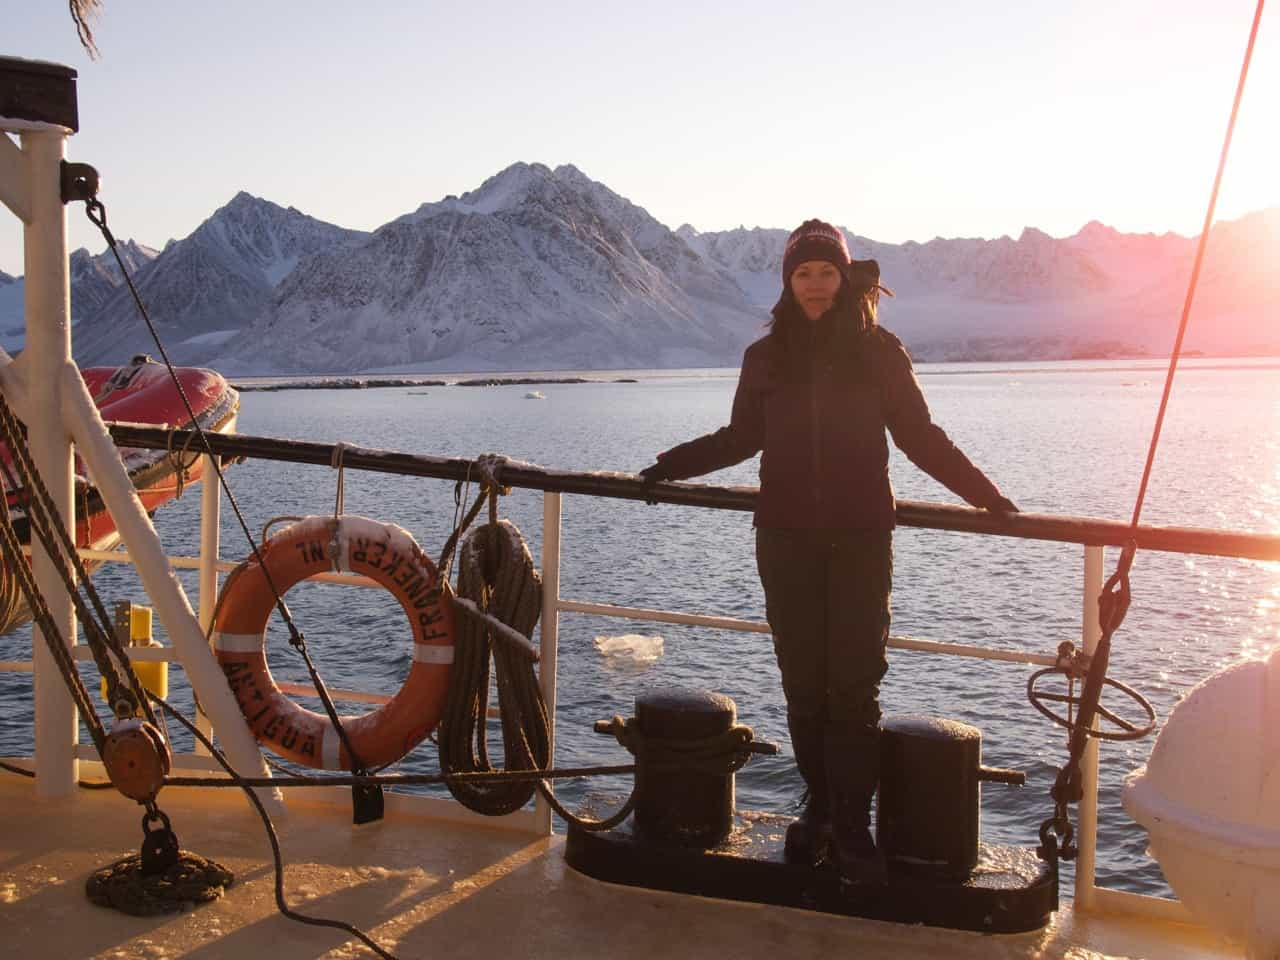 Playrwright Chantal Bilodeau is working on a series of plays about the impact of climate change on the eight countries of the Arctic